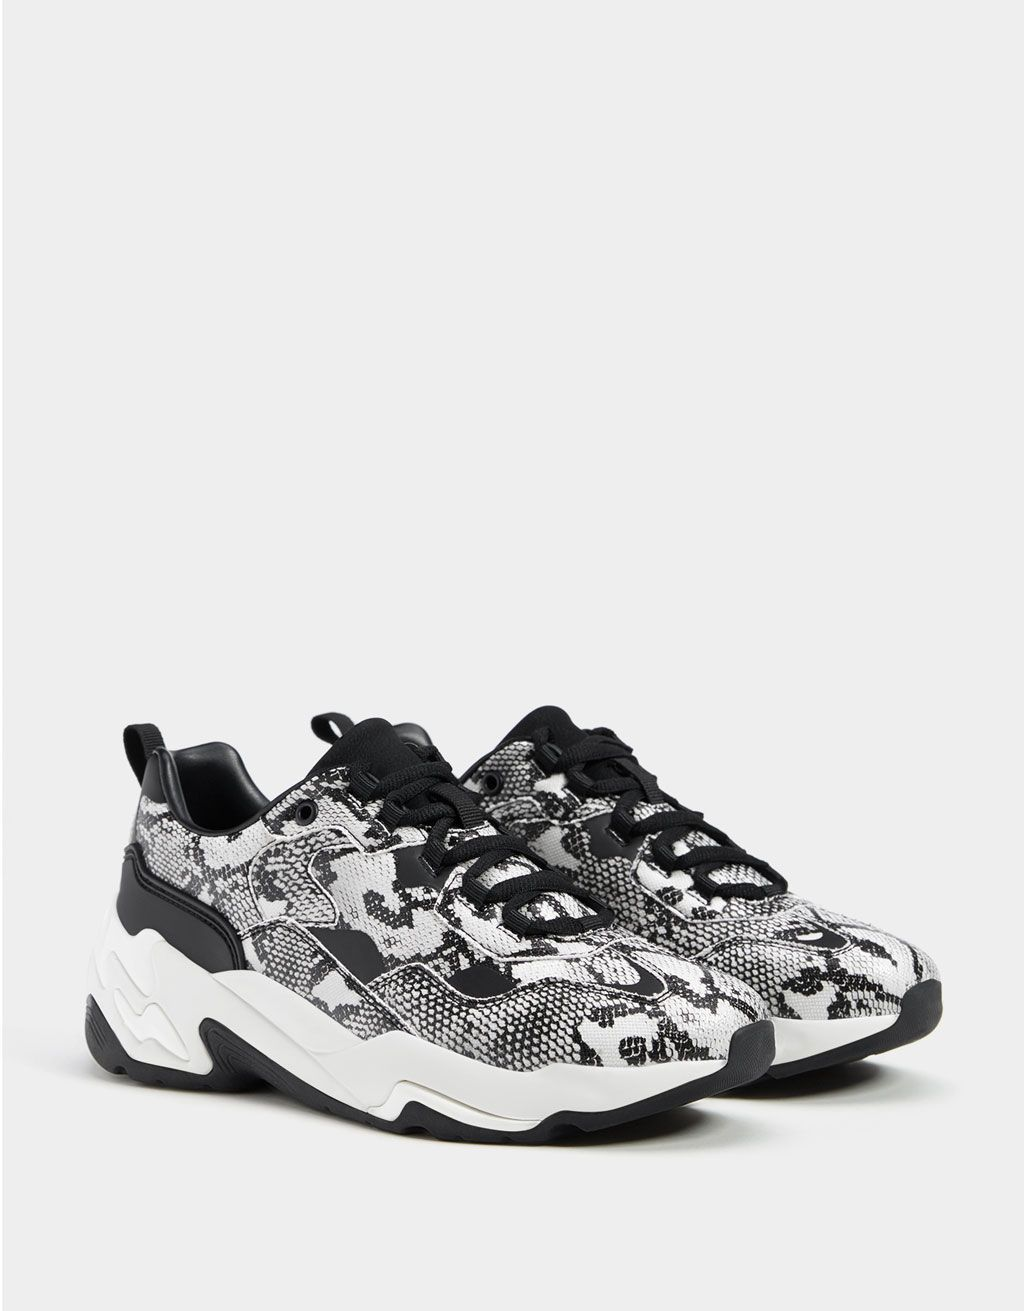 3f038e3a8409 Animal print platform trainers. Discover this and many more items in Bershka  with new products every week